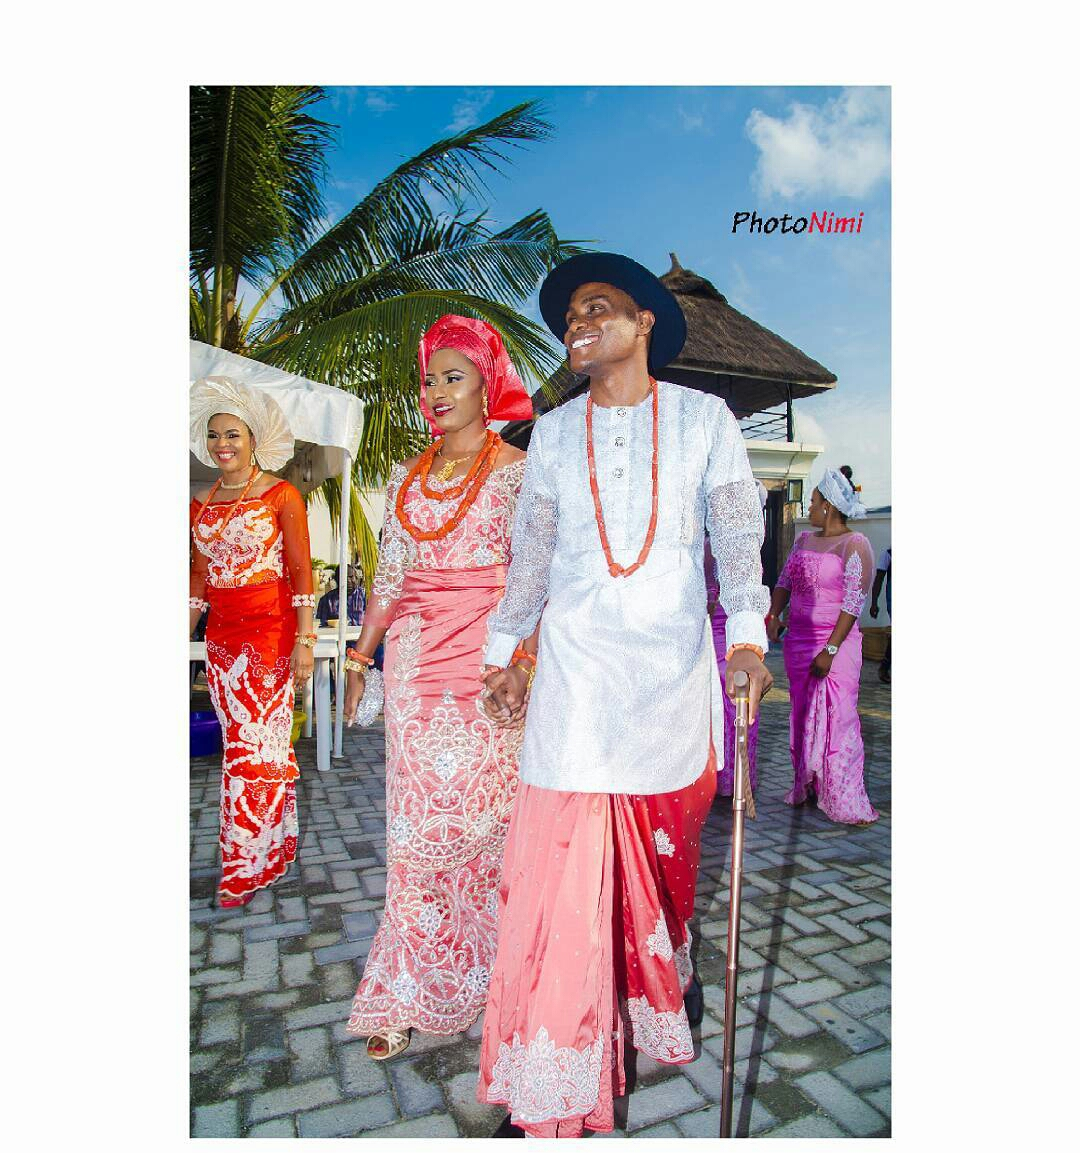 Pictures Of Traditional Wedding Attire For Igbo Men, igbo traditional wedding attire for groom, latest igbo traditional wedding attire, igbo traditional wedding attire 2018, igbo traditional wedding attire for the bride, igbo traditional wedding attire 2017, igbo traditional wedding attire 2015, www.the best igbo traditional marriage dress. com, igbo traditional wedding decoration, 2017 igbo traditional marriage, traditional marriage dresses, traditional wedding attire for bride, igbo traditional wedding decoration ideas, latest traditional wedding decorations, traditional wedding decoration pictures, traditional wedding attire in igboland